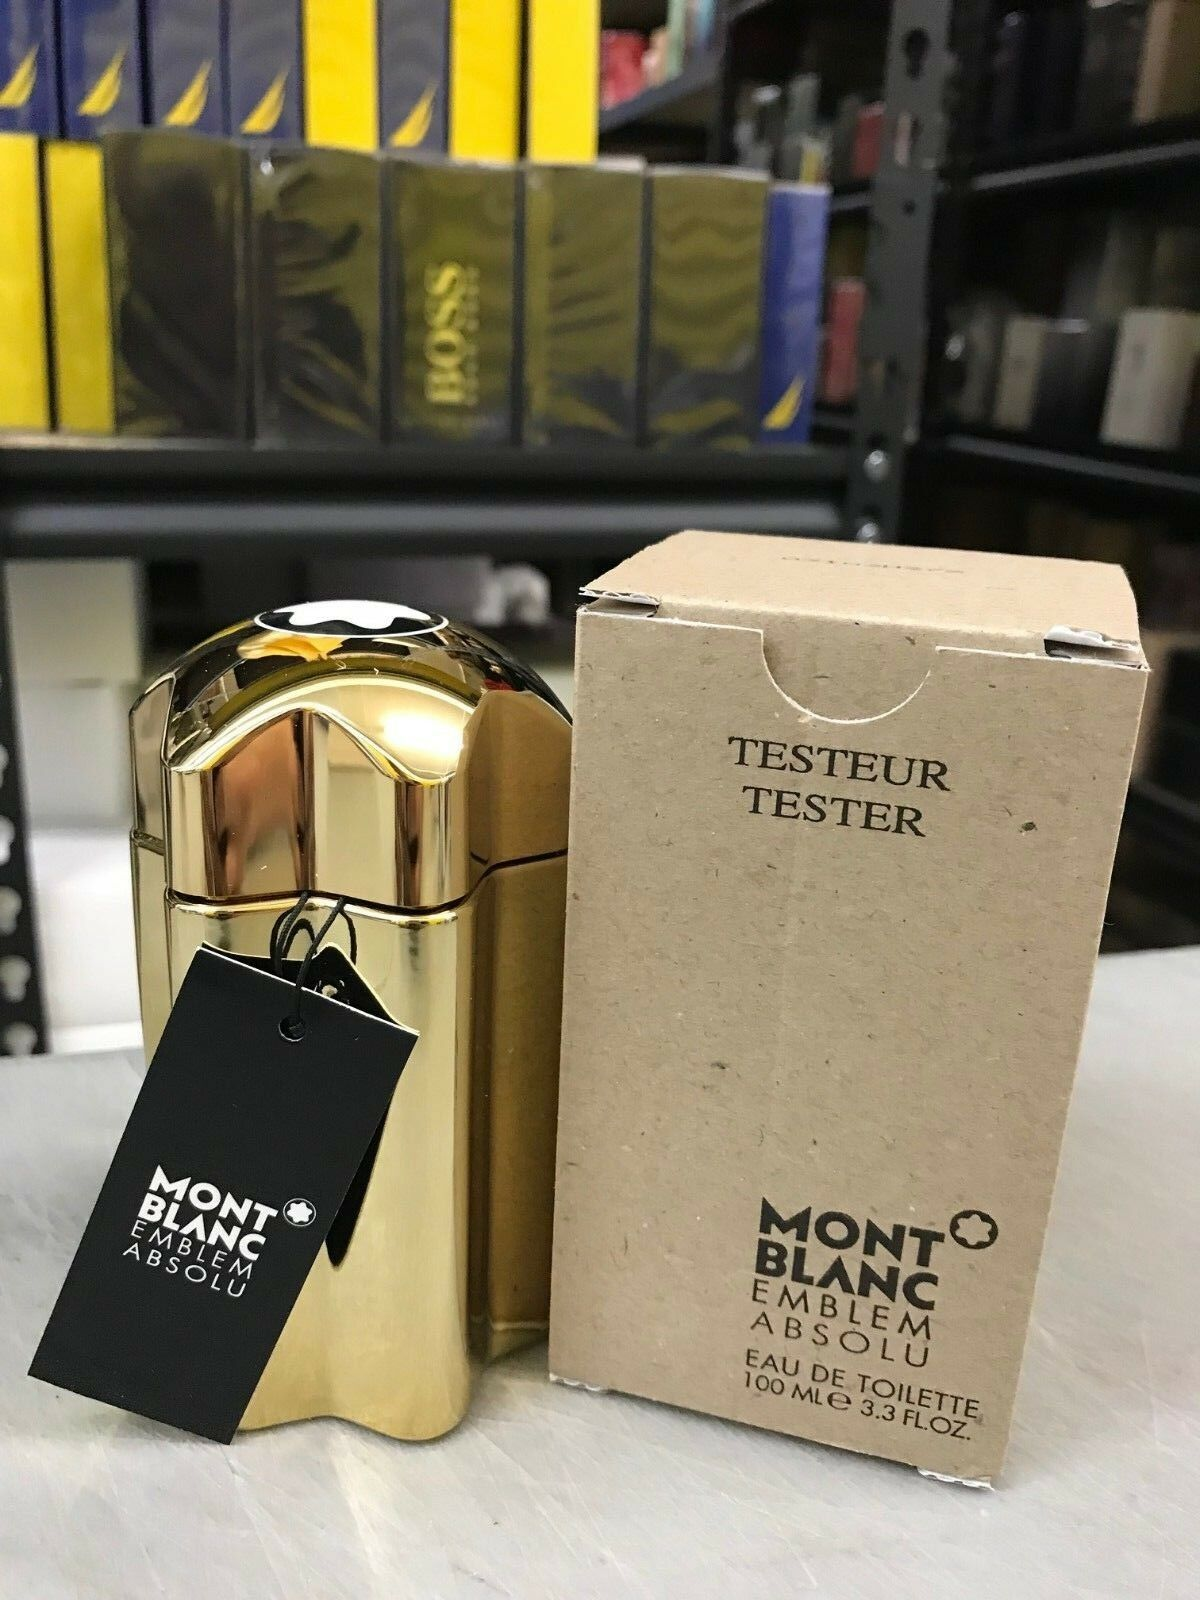 T Mont Blanc Emblem Absolu EDT For Men 3.4oz / 100ml New In Box 1 of 2FREE Shipping See More